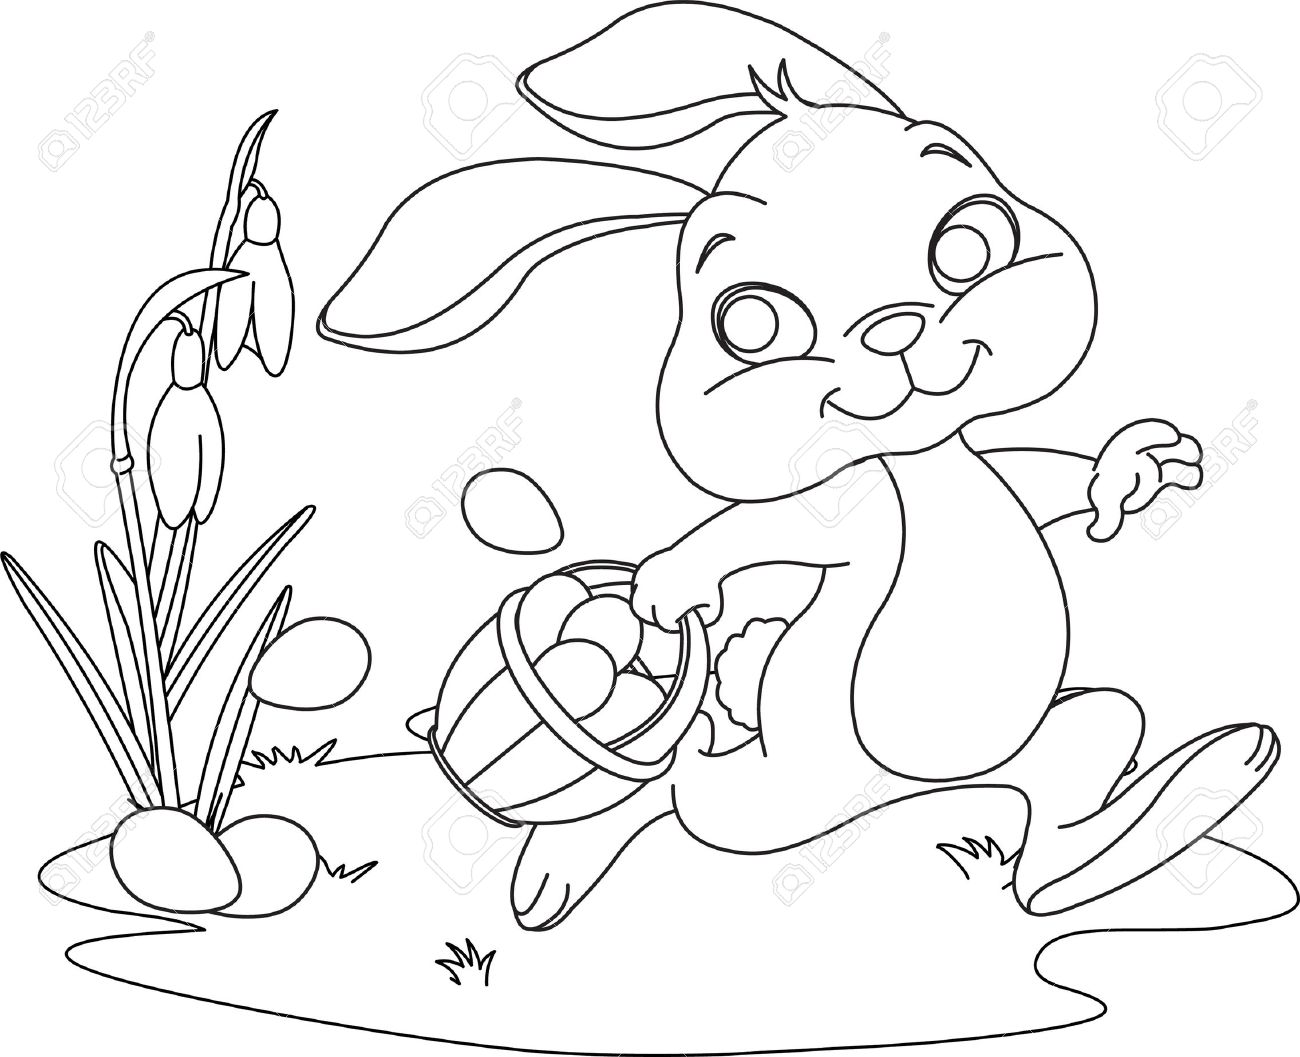 Cute Easter Bunny Hiding Eggs Coloring Page Royalty Free Cliparts Easter Bunny Coloring Pages